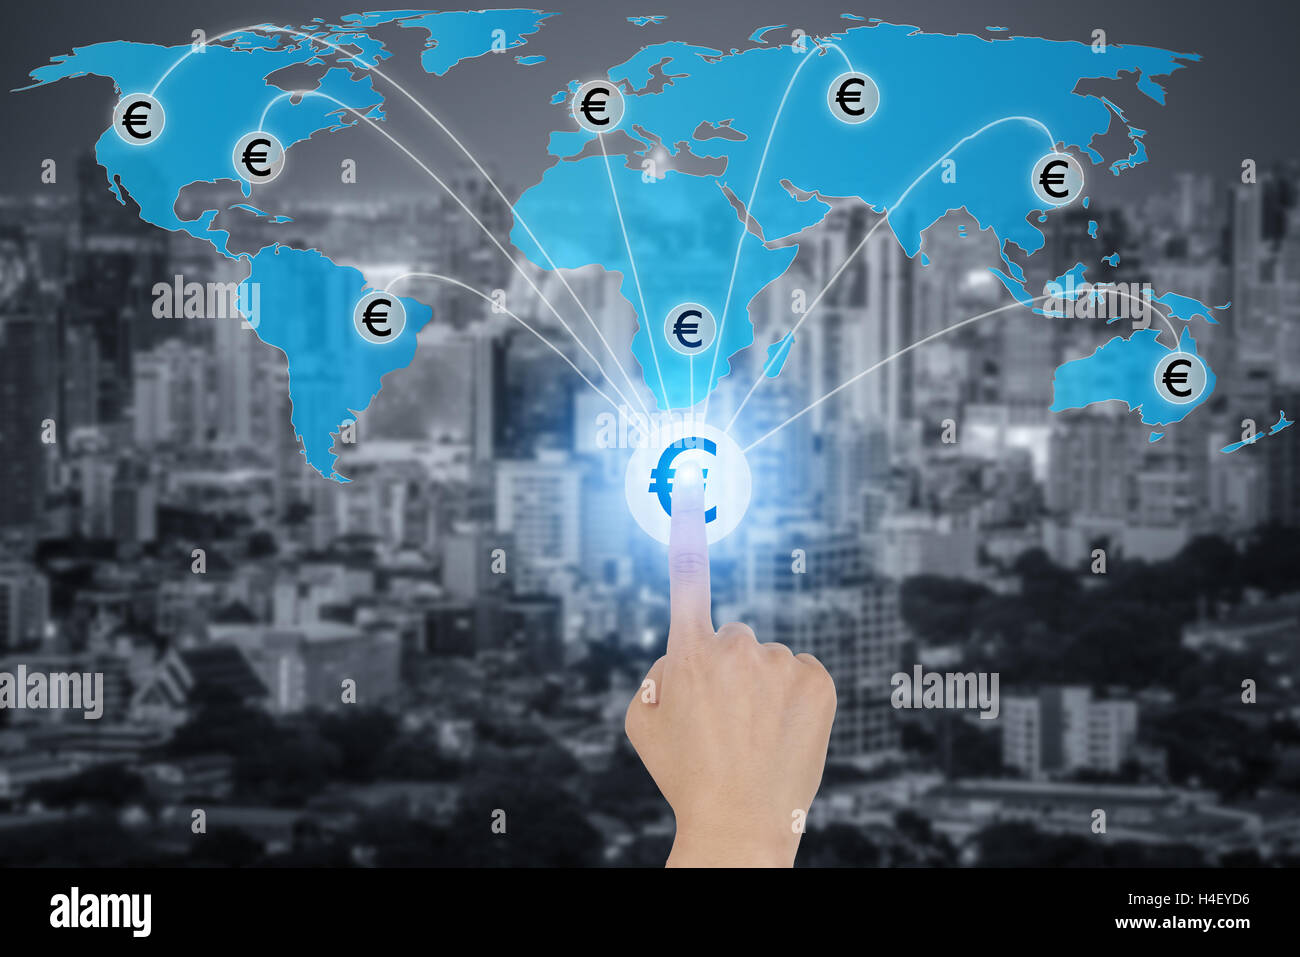 Appuyer sur la touche avec Euro Currency Symbols connectés en réseau, concept de la finance mondiale la Photo Stock